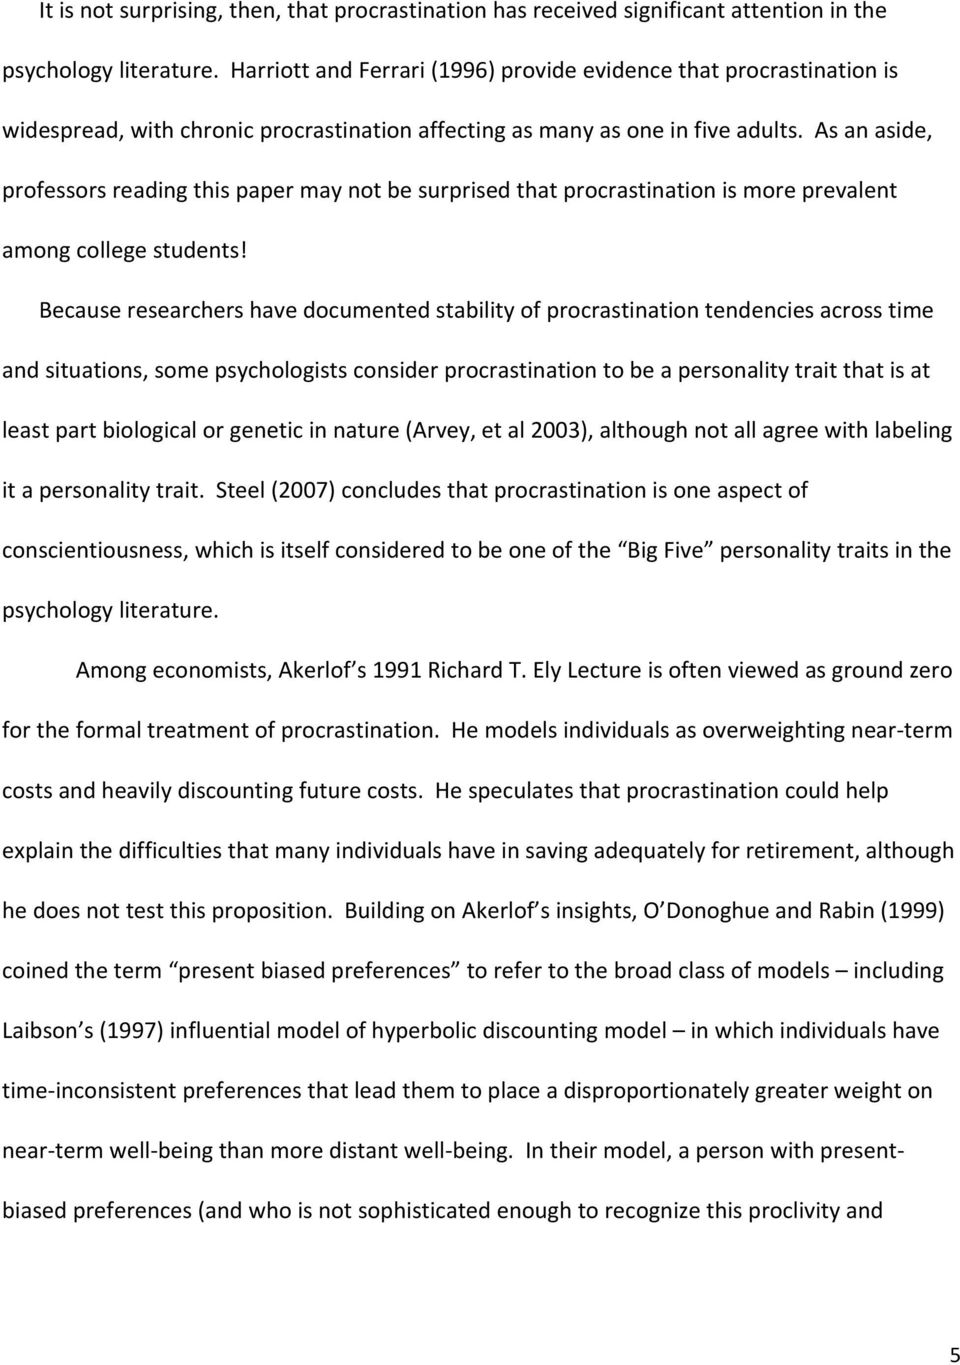 As an aside, professors reading this paper may not be surprised that procrastination is more prevalent among college students!